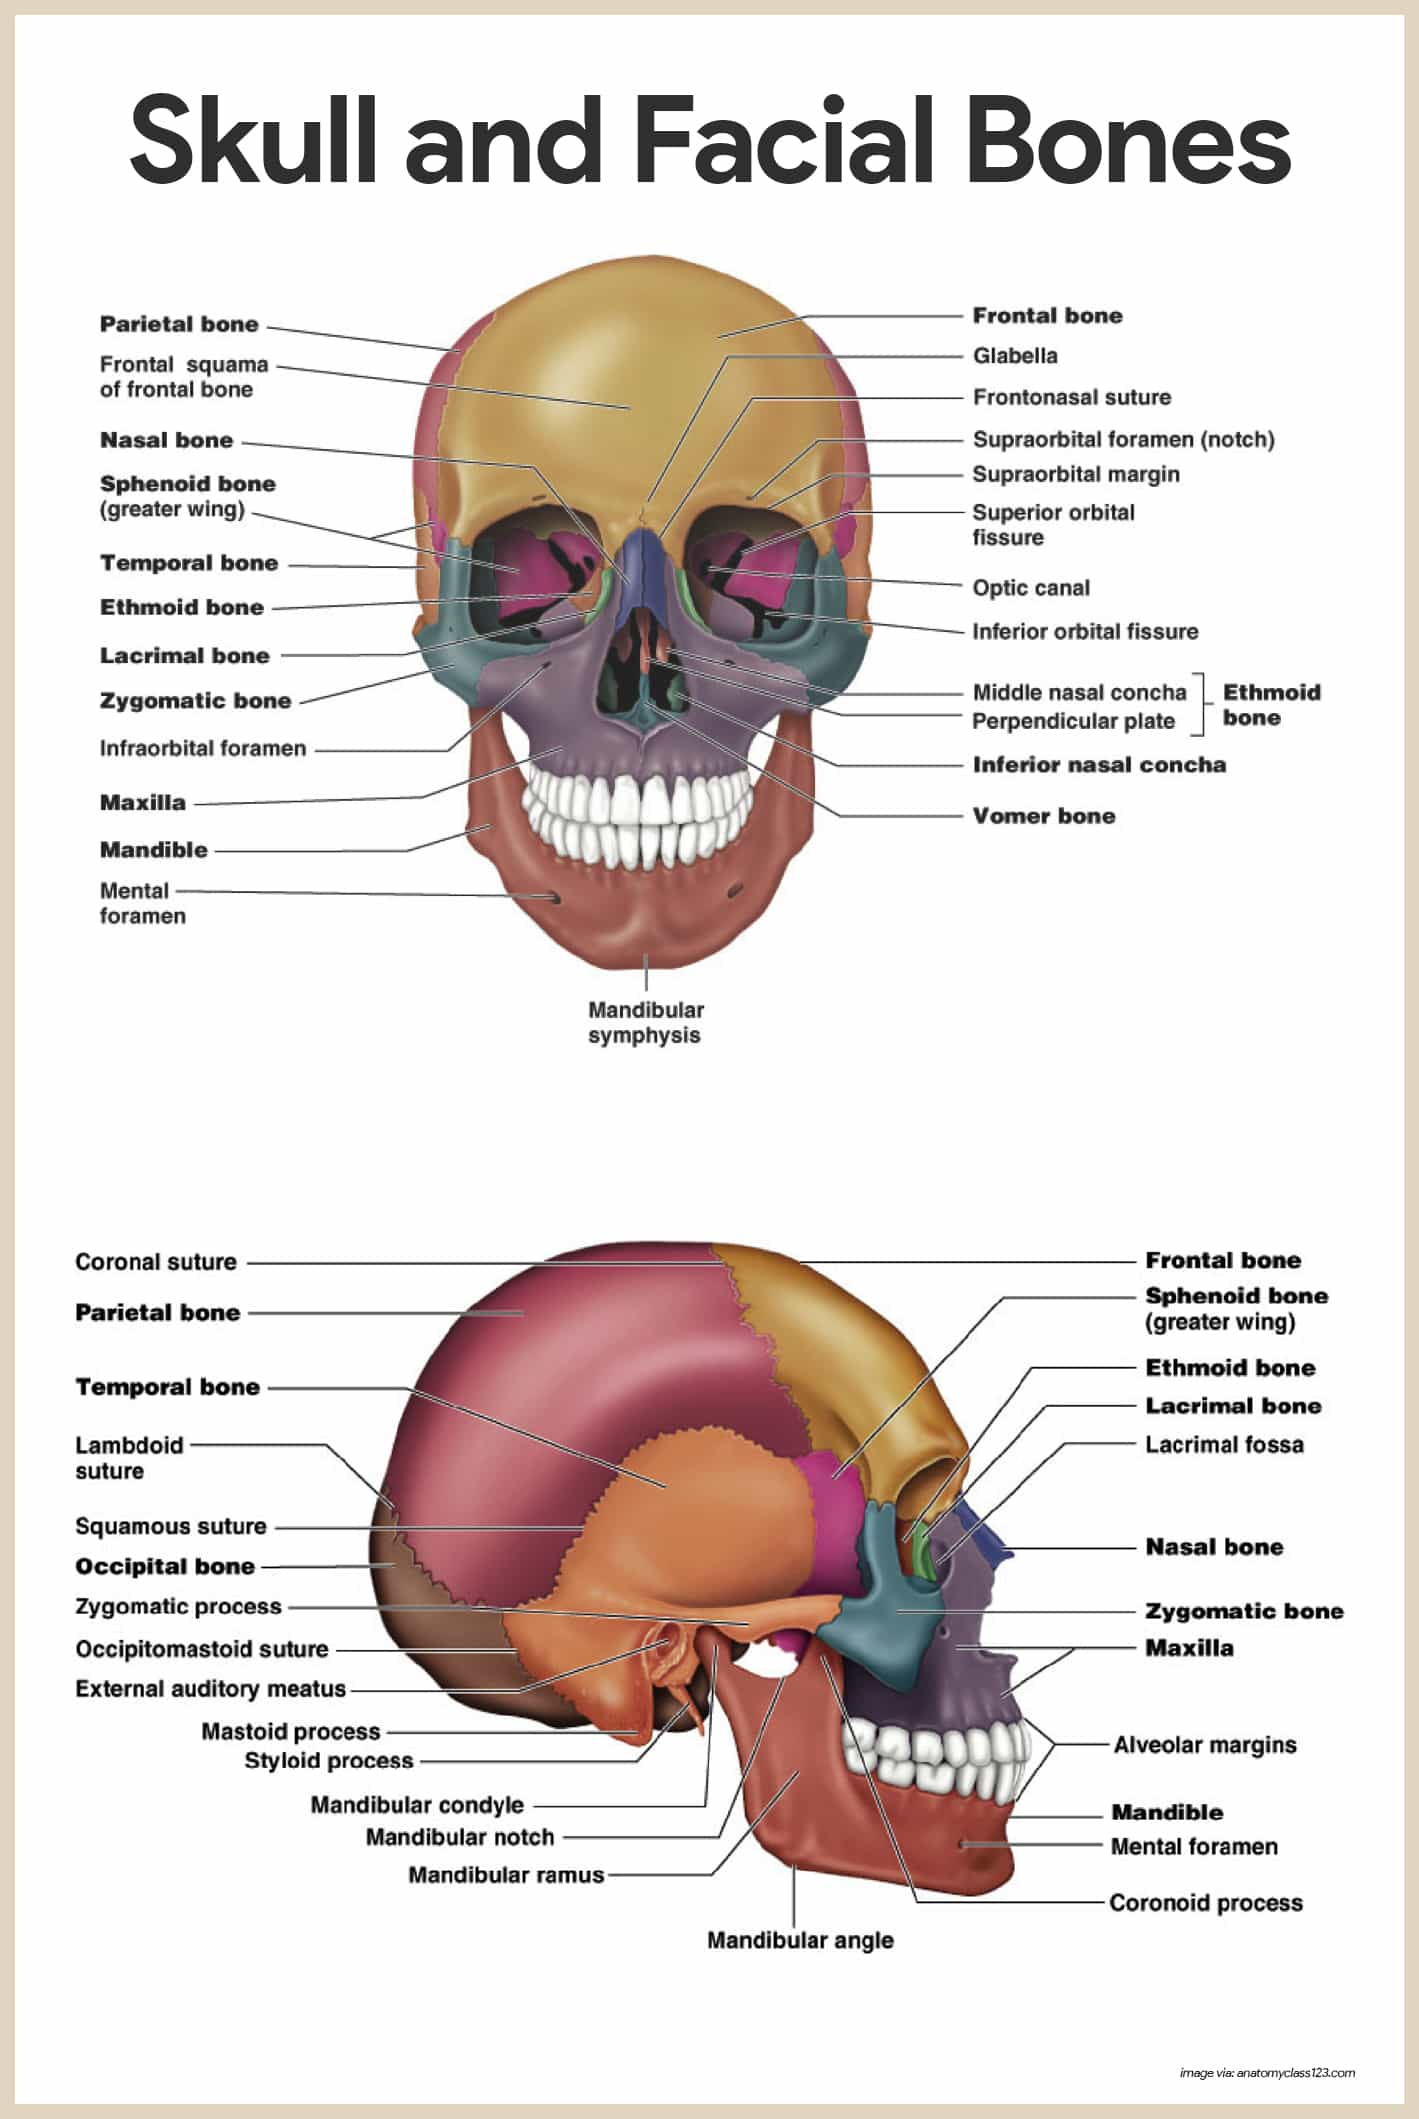 Skull and Facial Bones-Skeletal System Anatomy and Physiology for Nurses